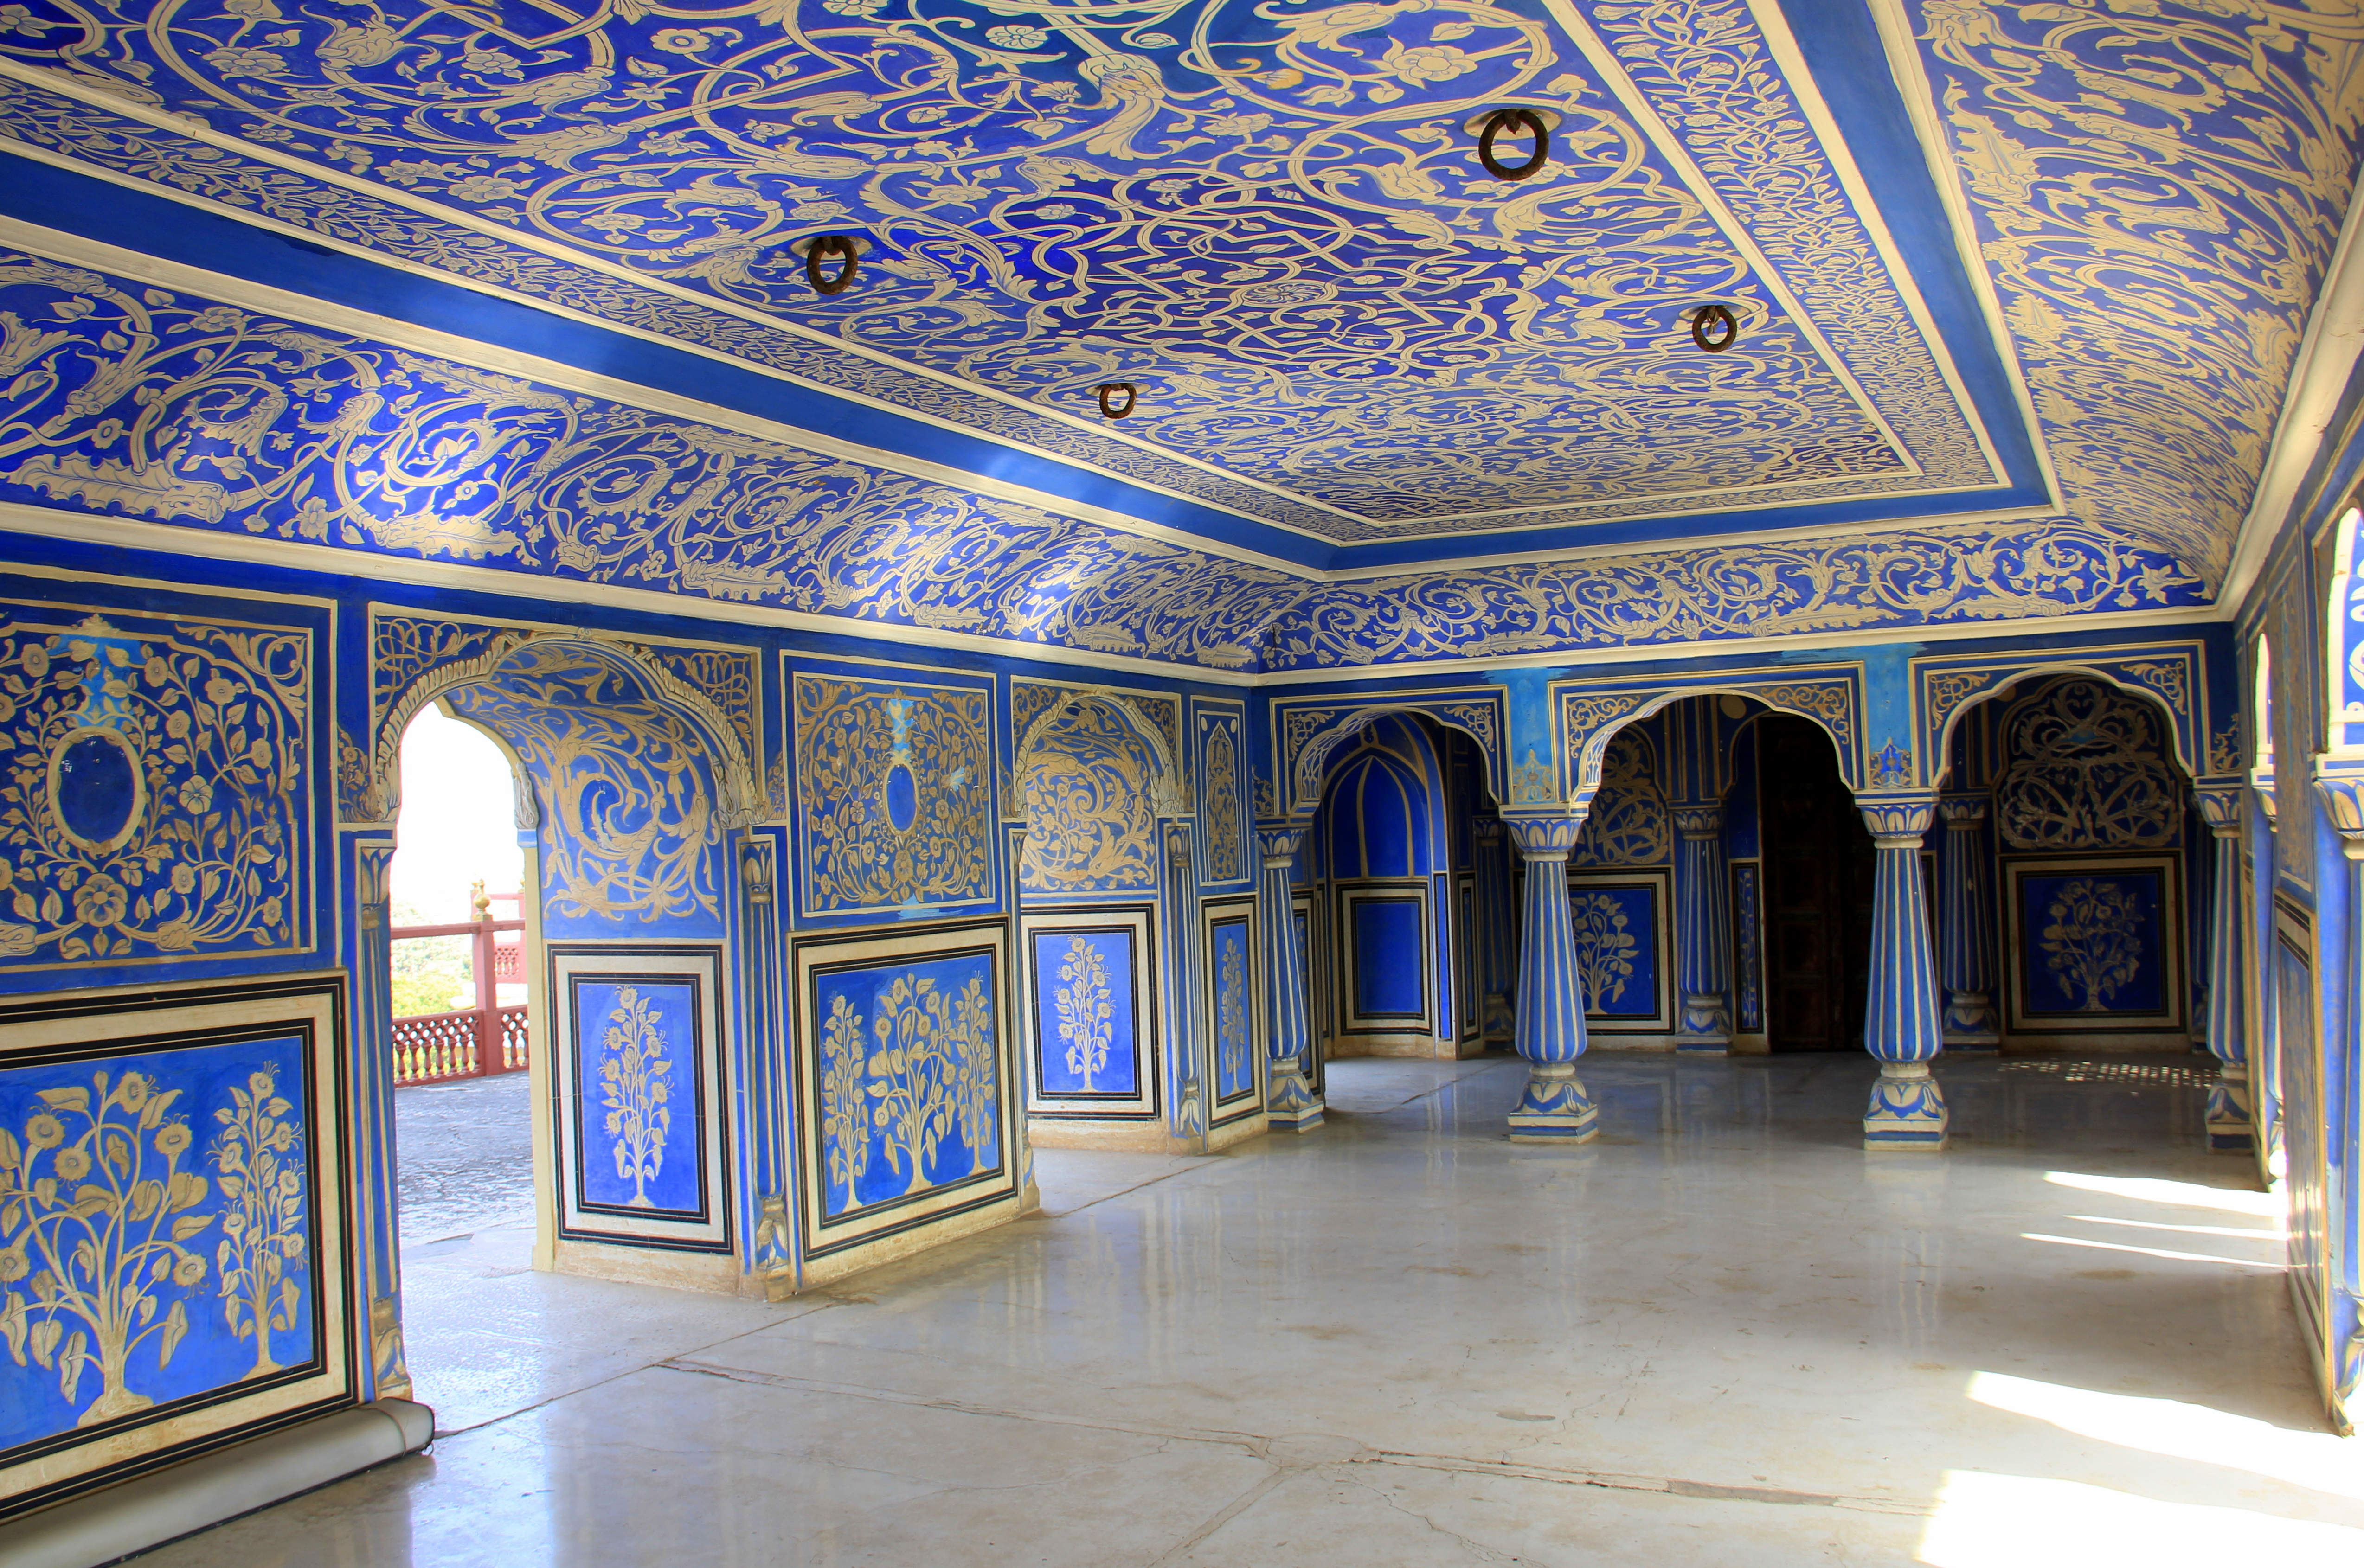 city palace is a must visit attraction when in jaipur with kids